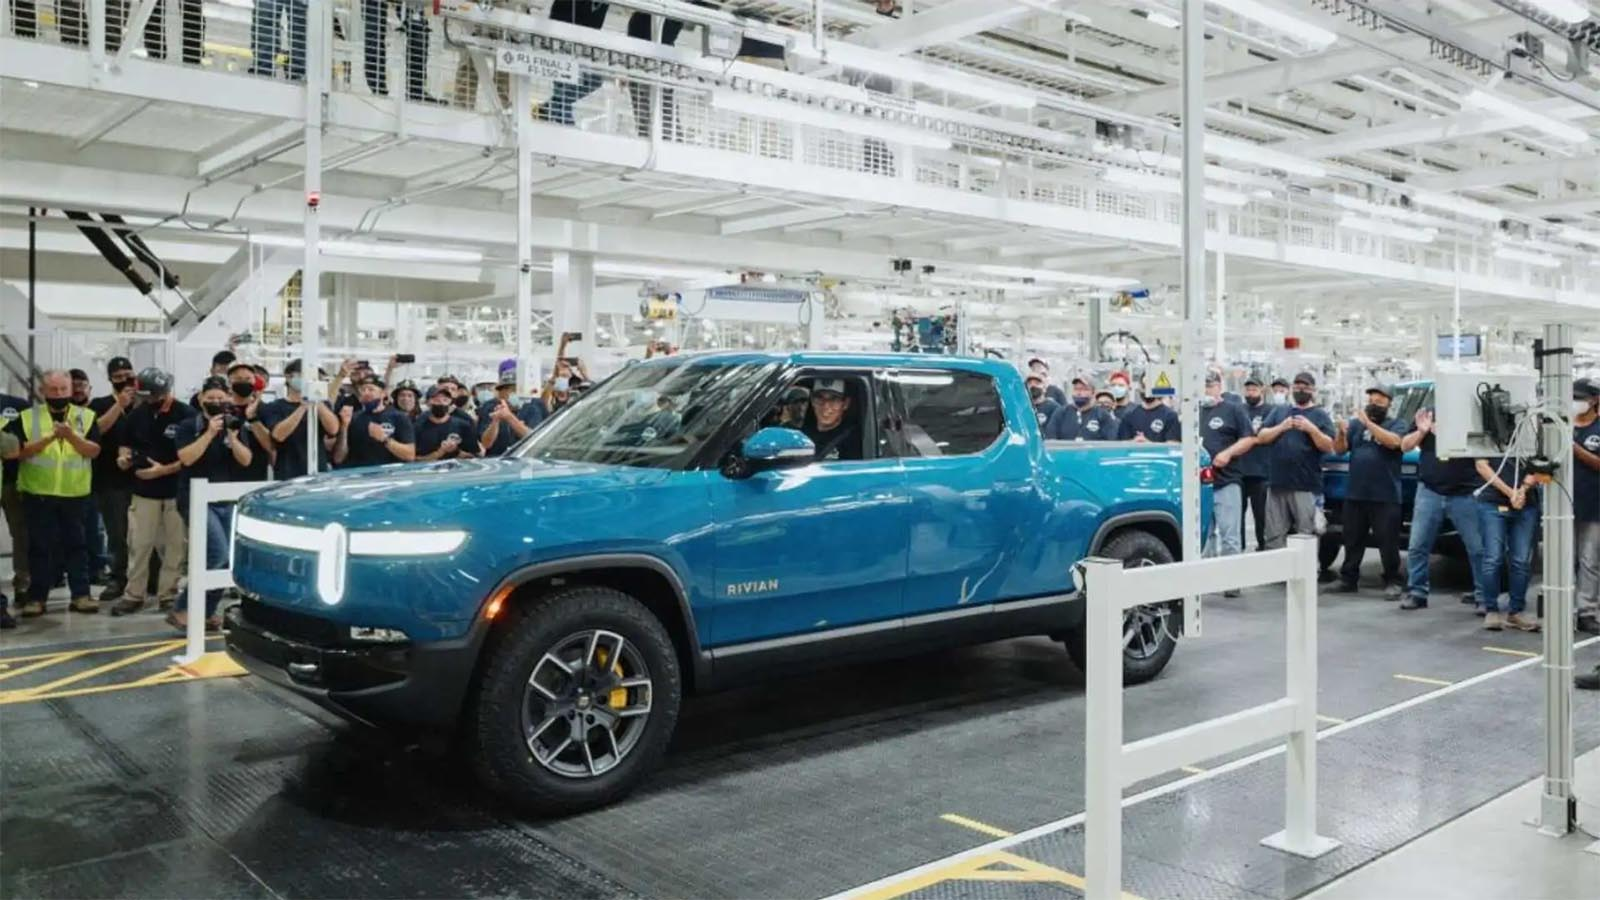 Dozens More Models, New Incentives, and Increased Production Mean Buyers Could Find Plenty of Reasons to Go Electric